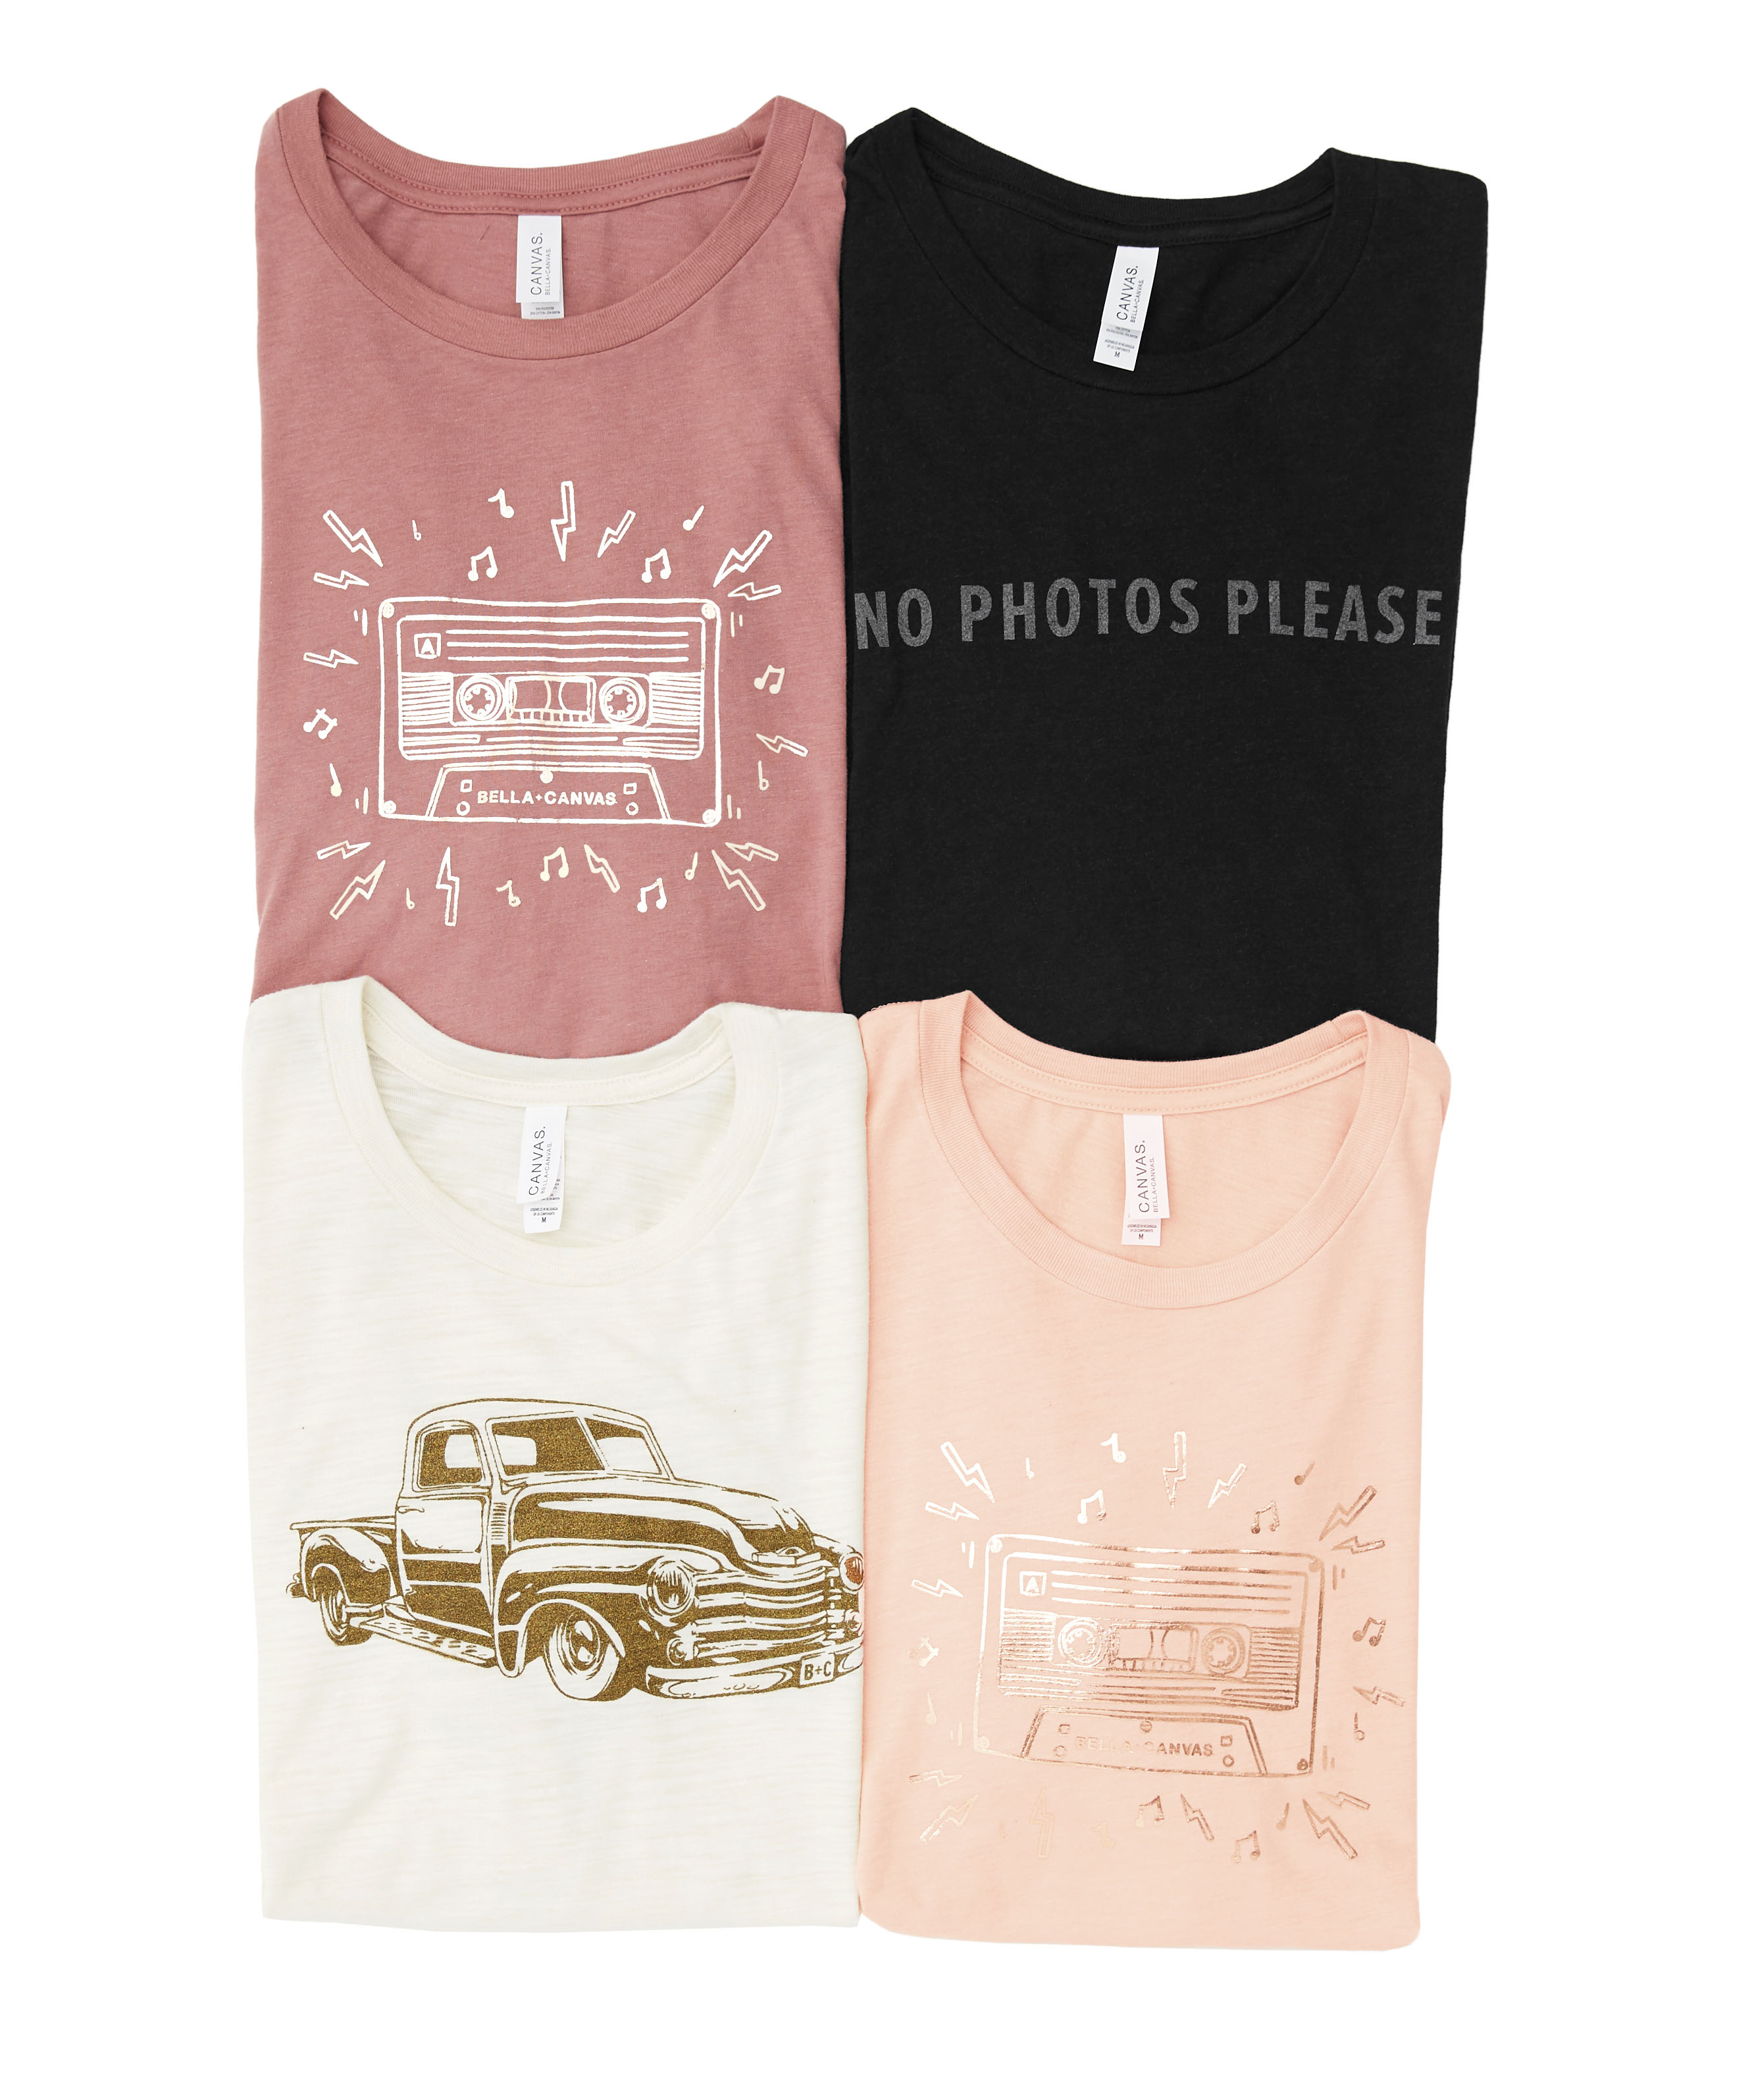 Specialty Inks printed on BELLA+CANVAS T-shirts